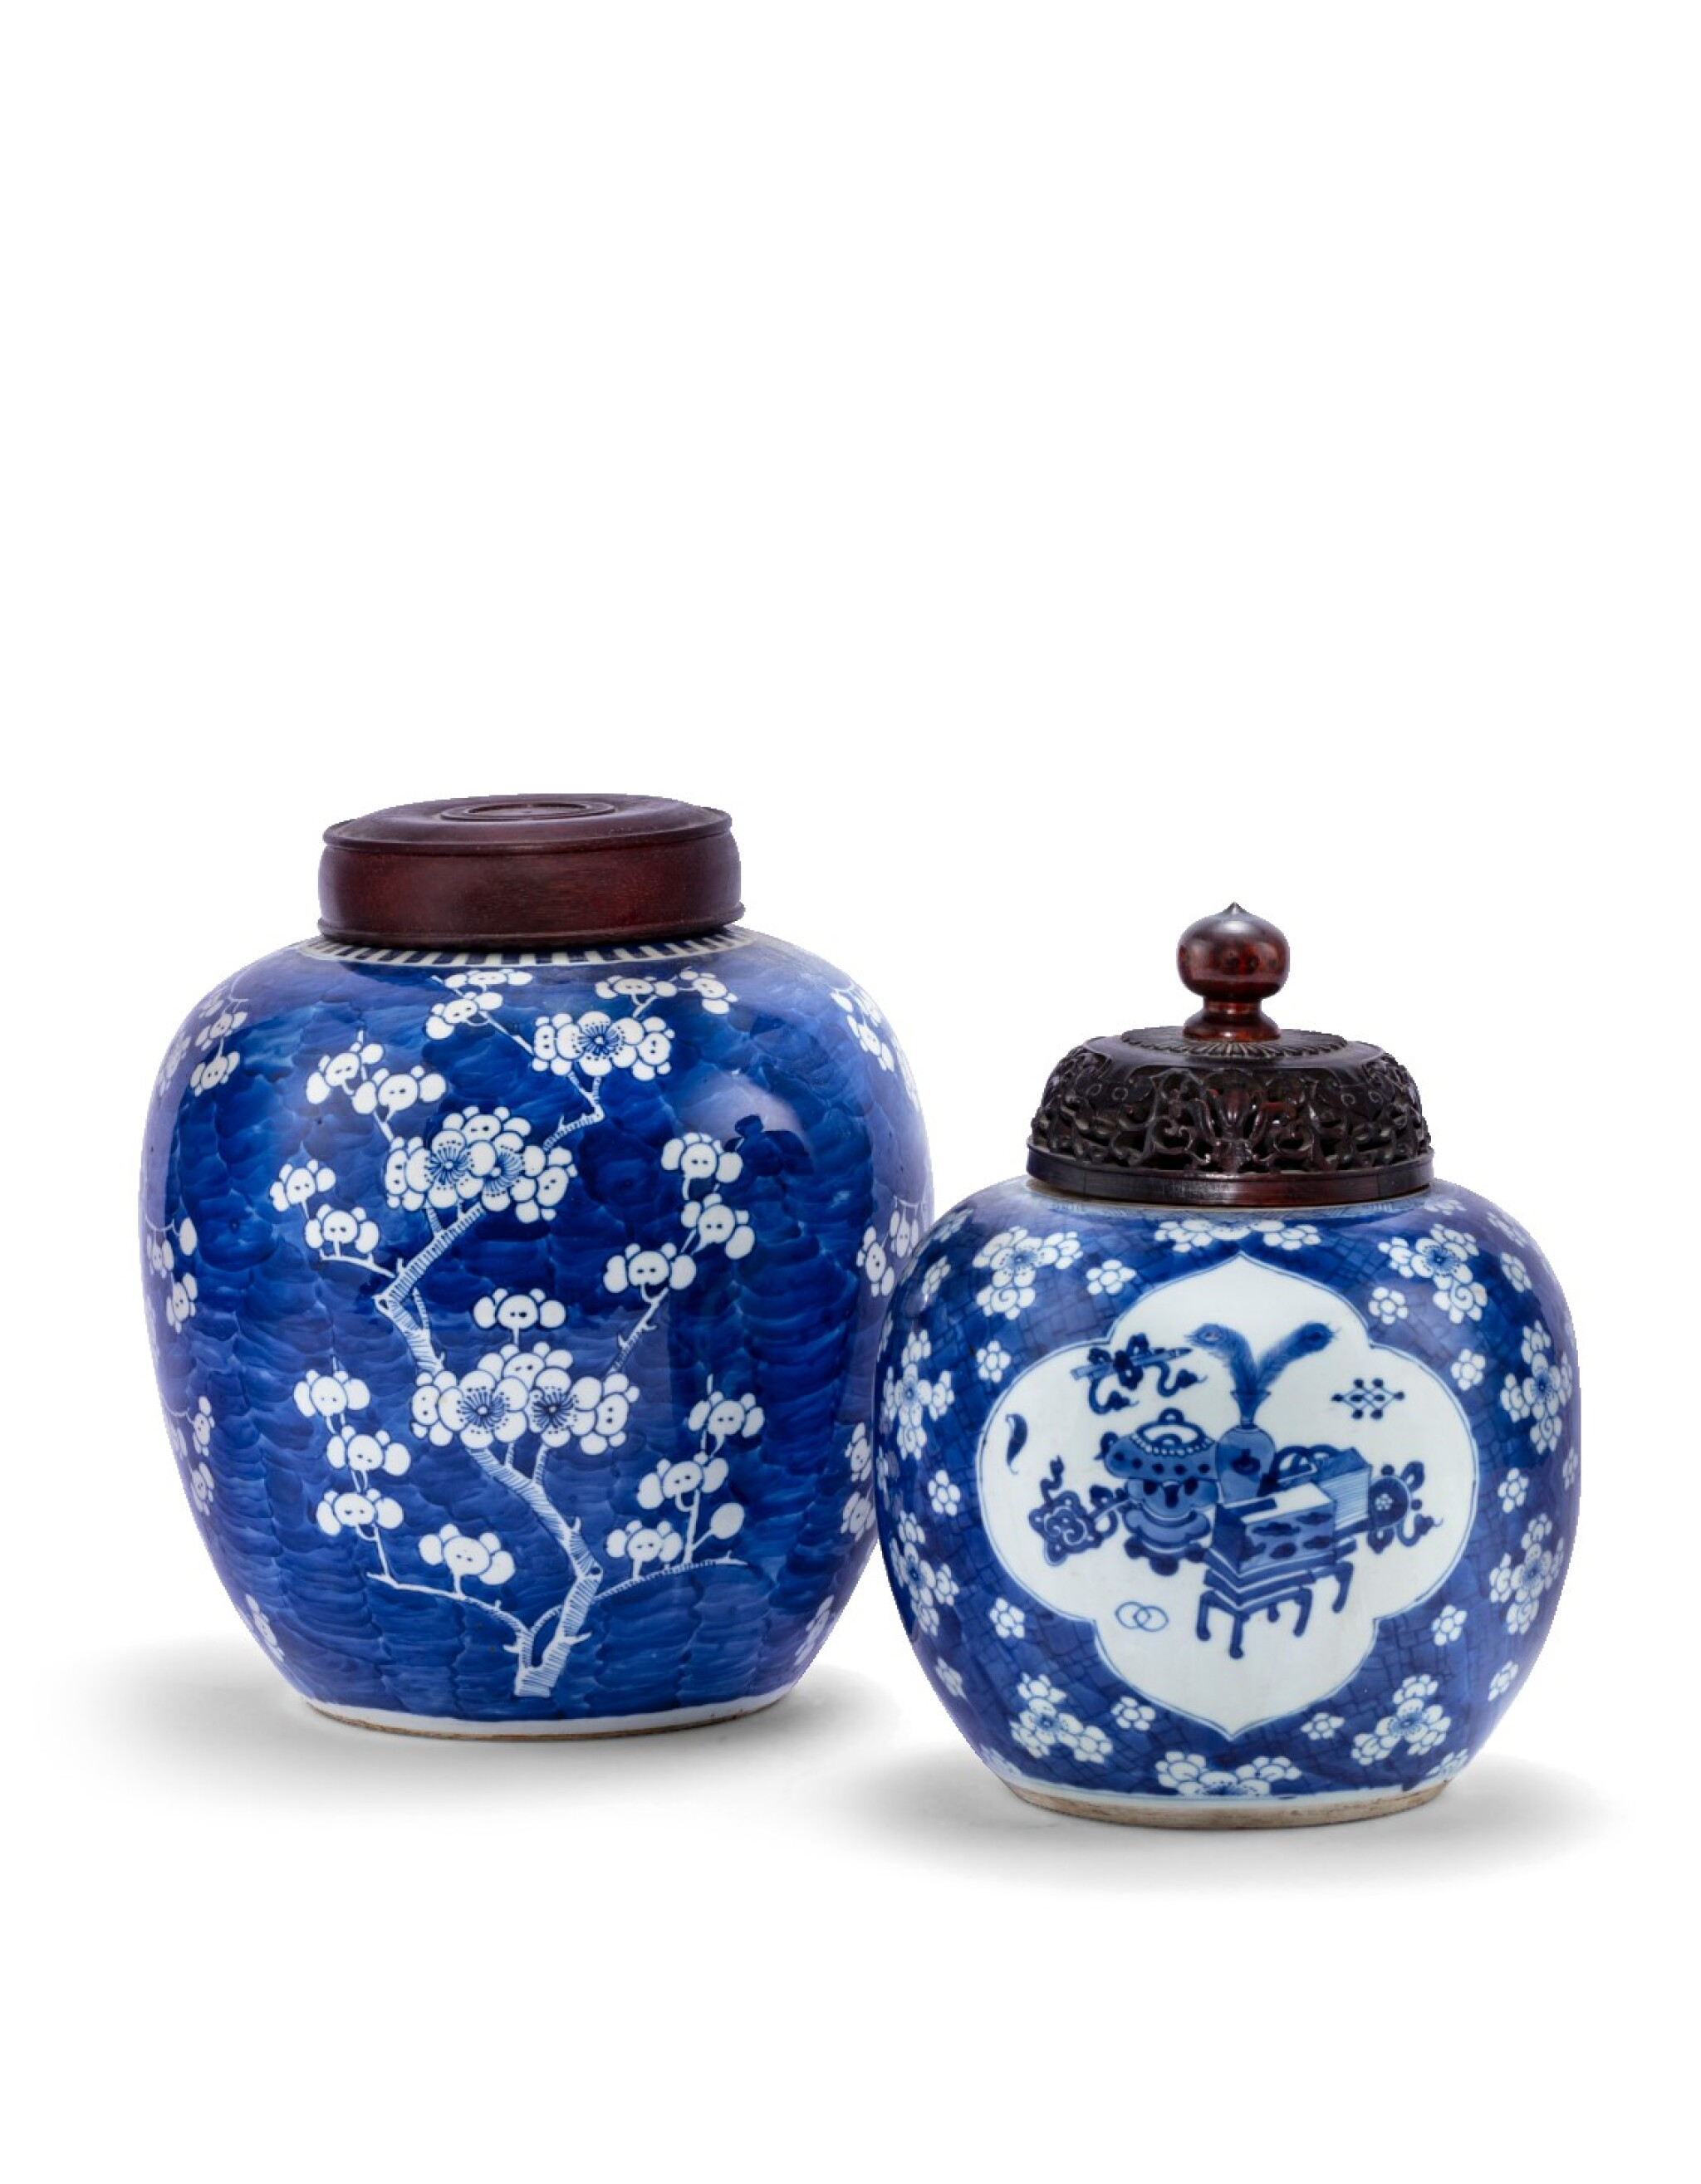 View 1 of Lot 229. Deux pots à gingembre en porcelaine bleu blanc Dynastie Qing, XVIIIE-XIXE siècle   清十八至十九世紀 青花花卉紋罐一組兩件   Two blue and white jars and covers, Qing dynasty, 18th-19th century.